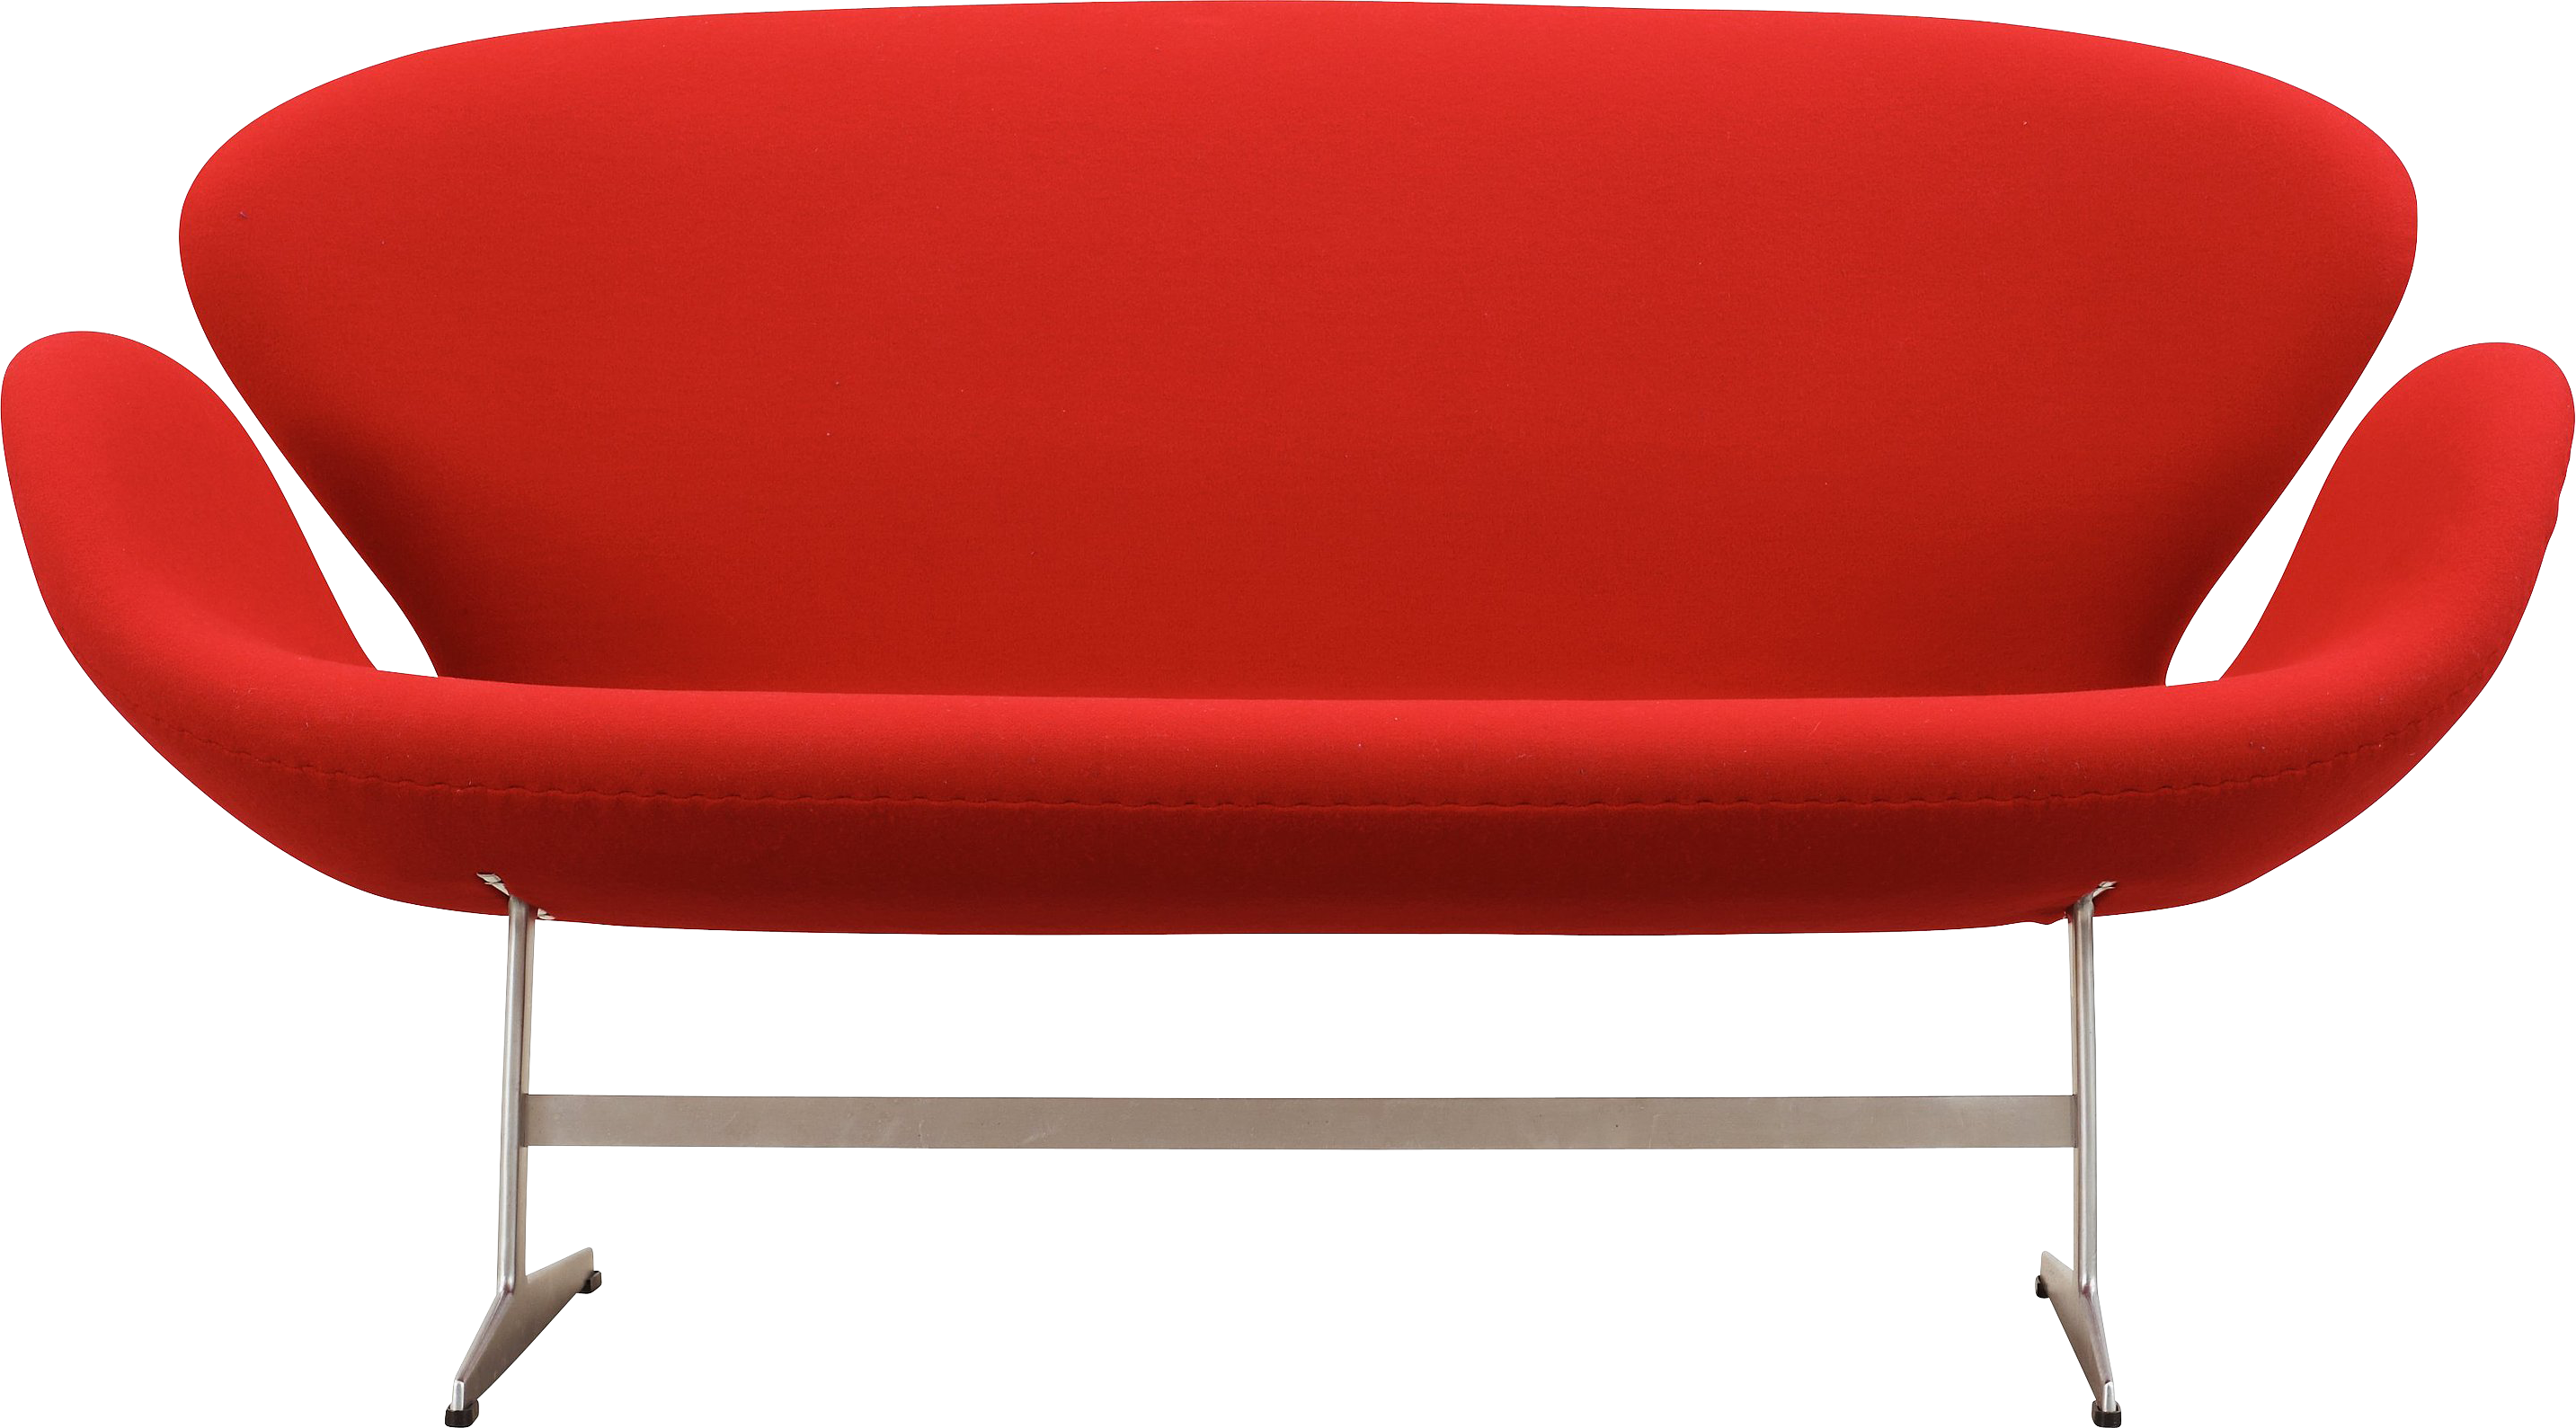 Furniture clipart single couch. Red sofa png image